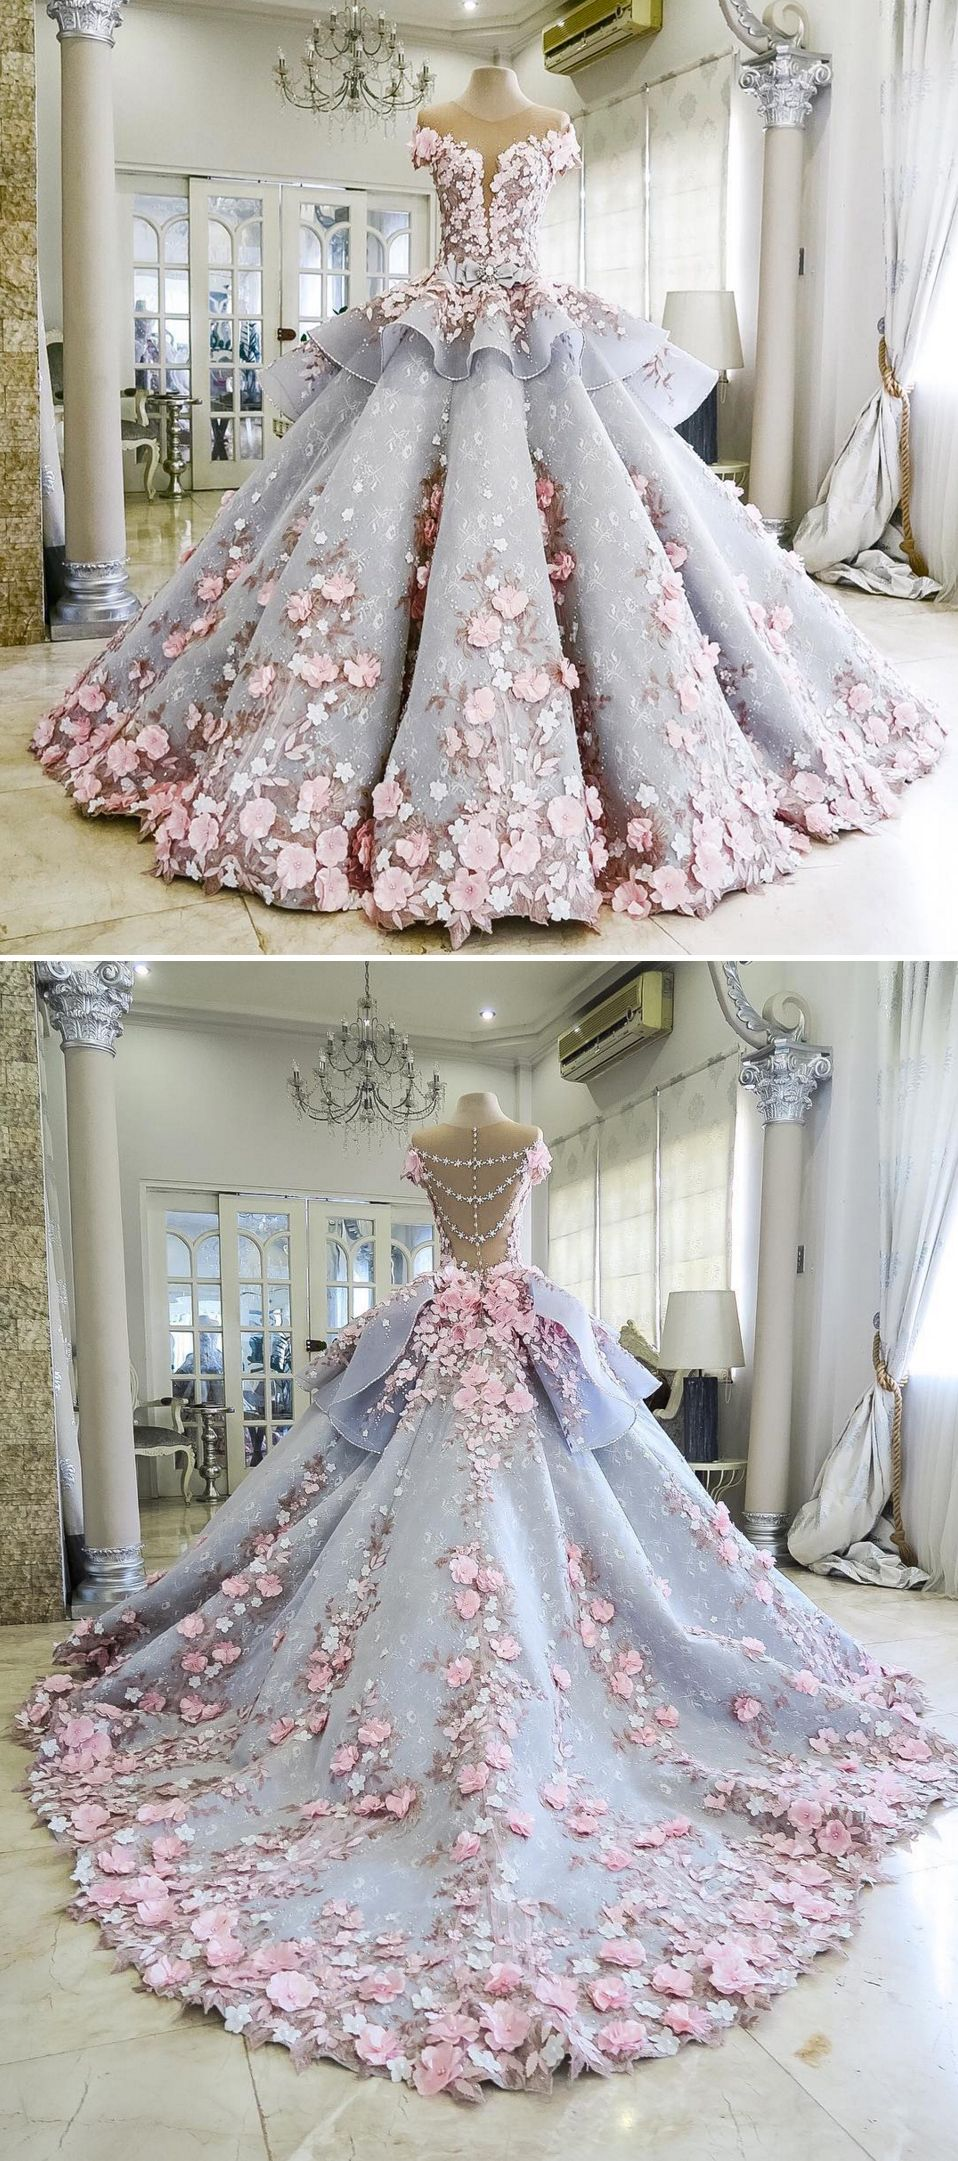 Ball Gown Fit For A Princess Pantone Color Of The Year 2016